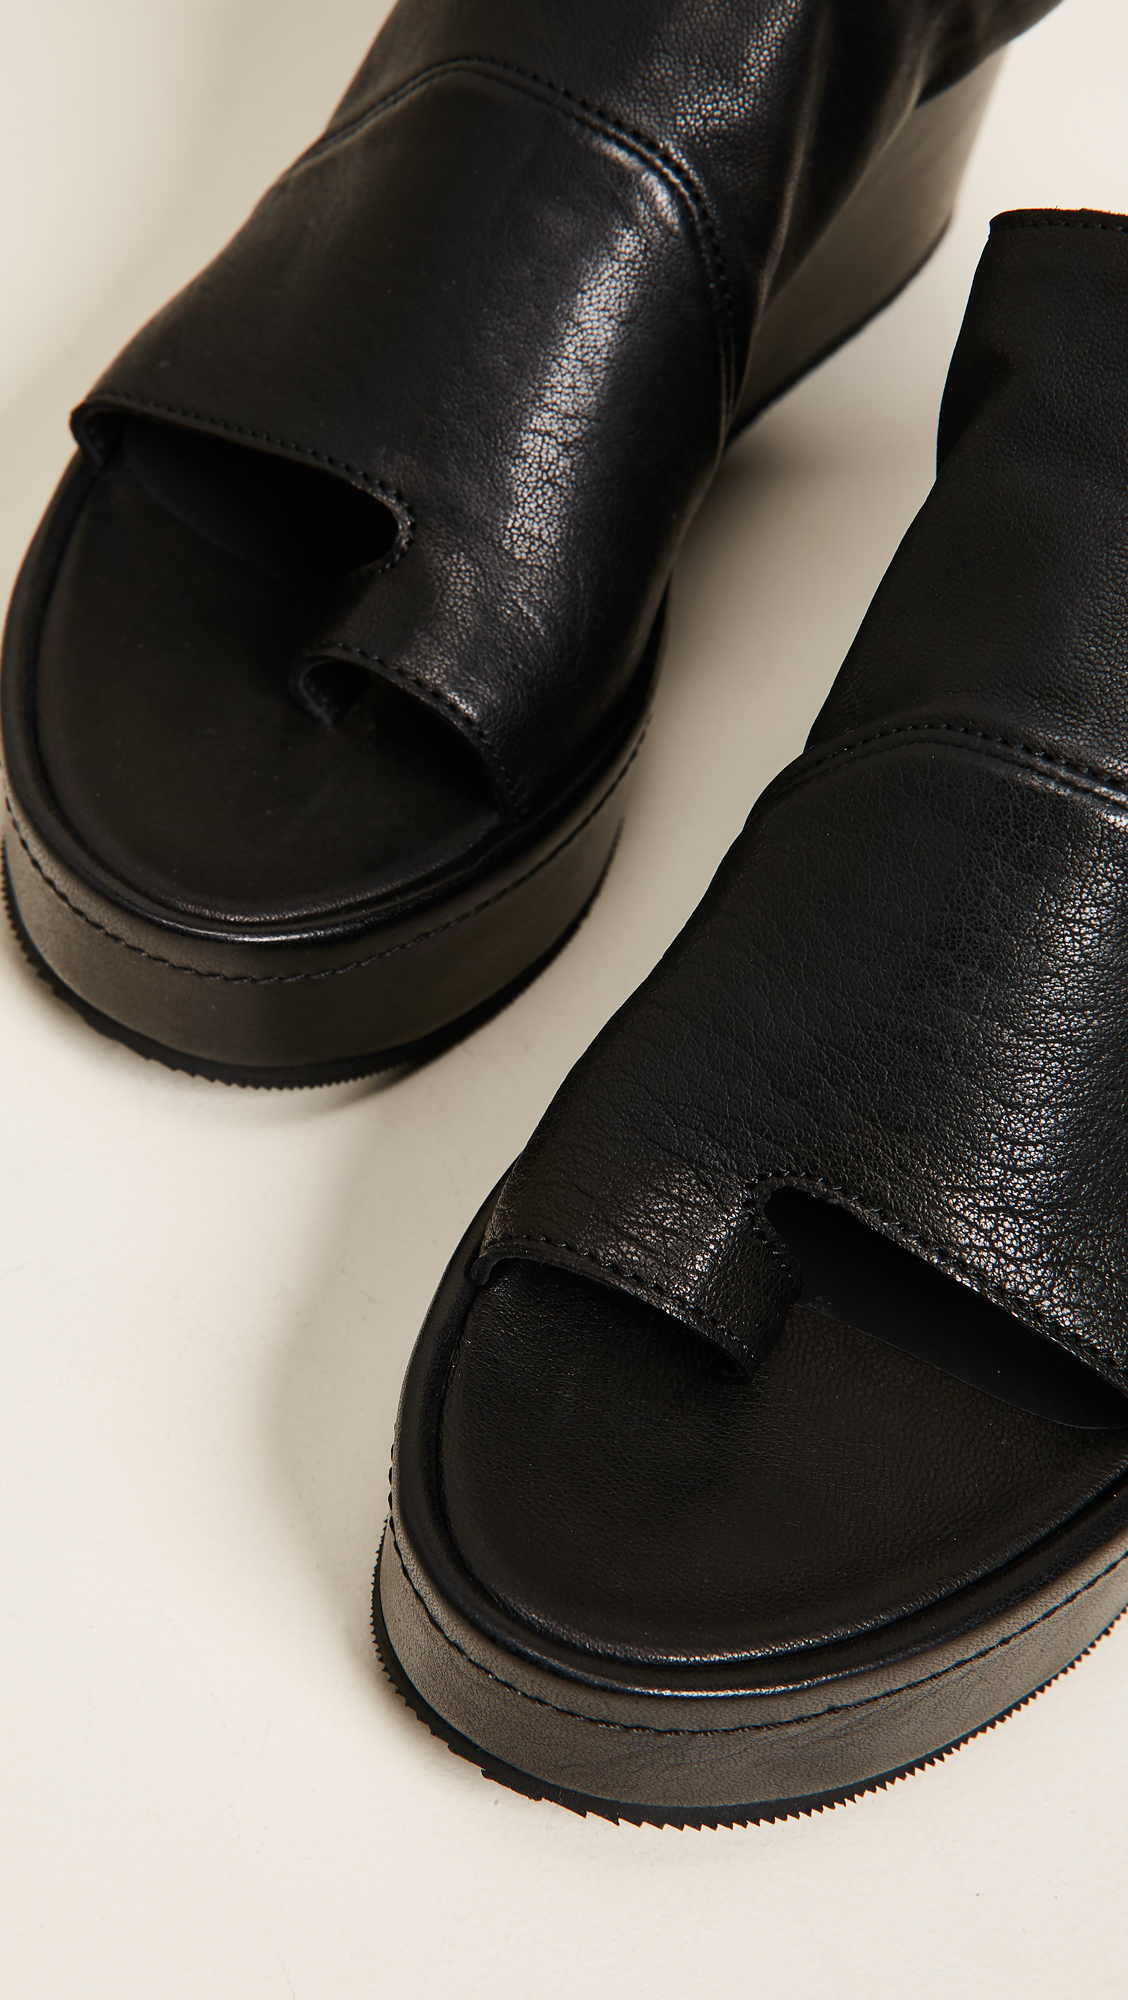 LD TUTTLE The After Platform Slides in Black